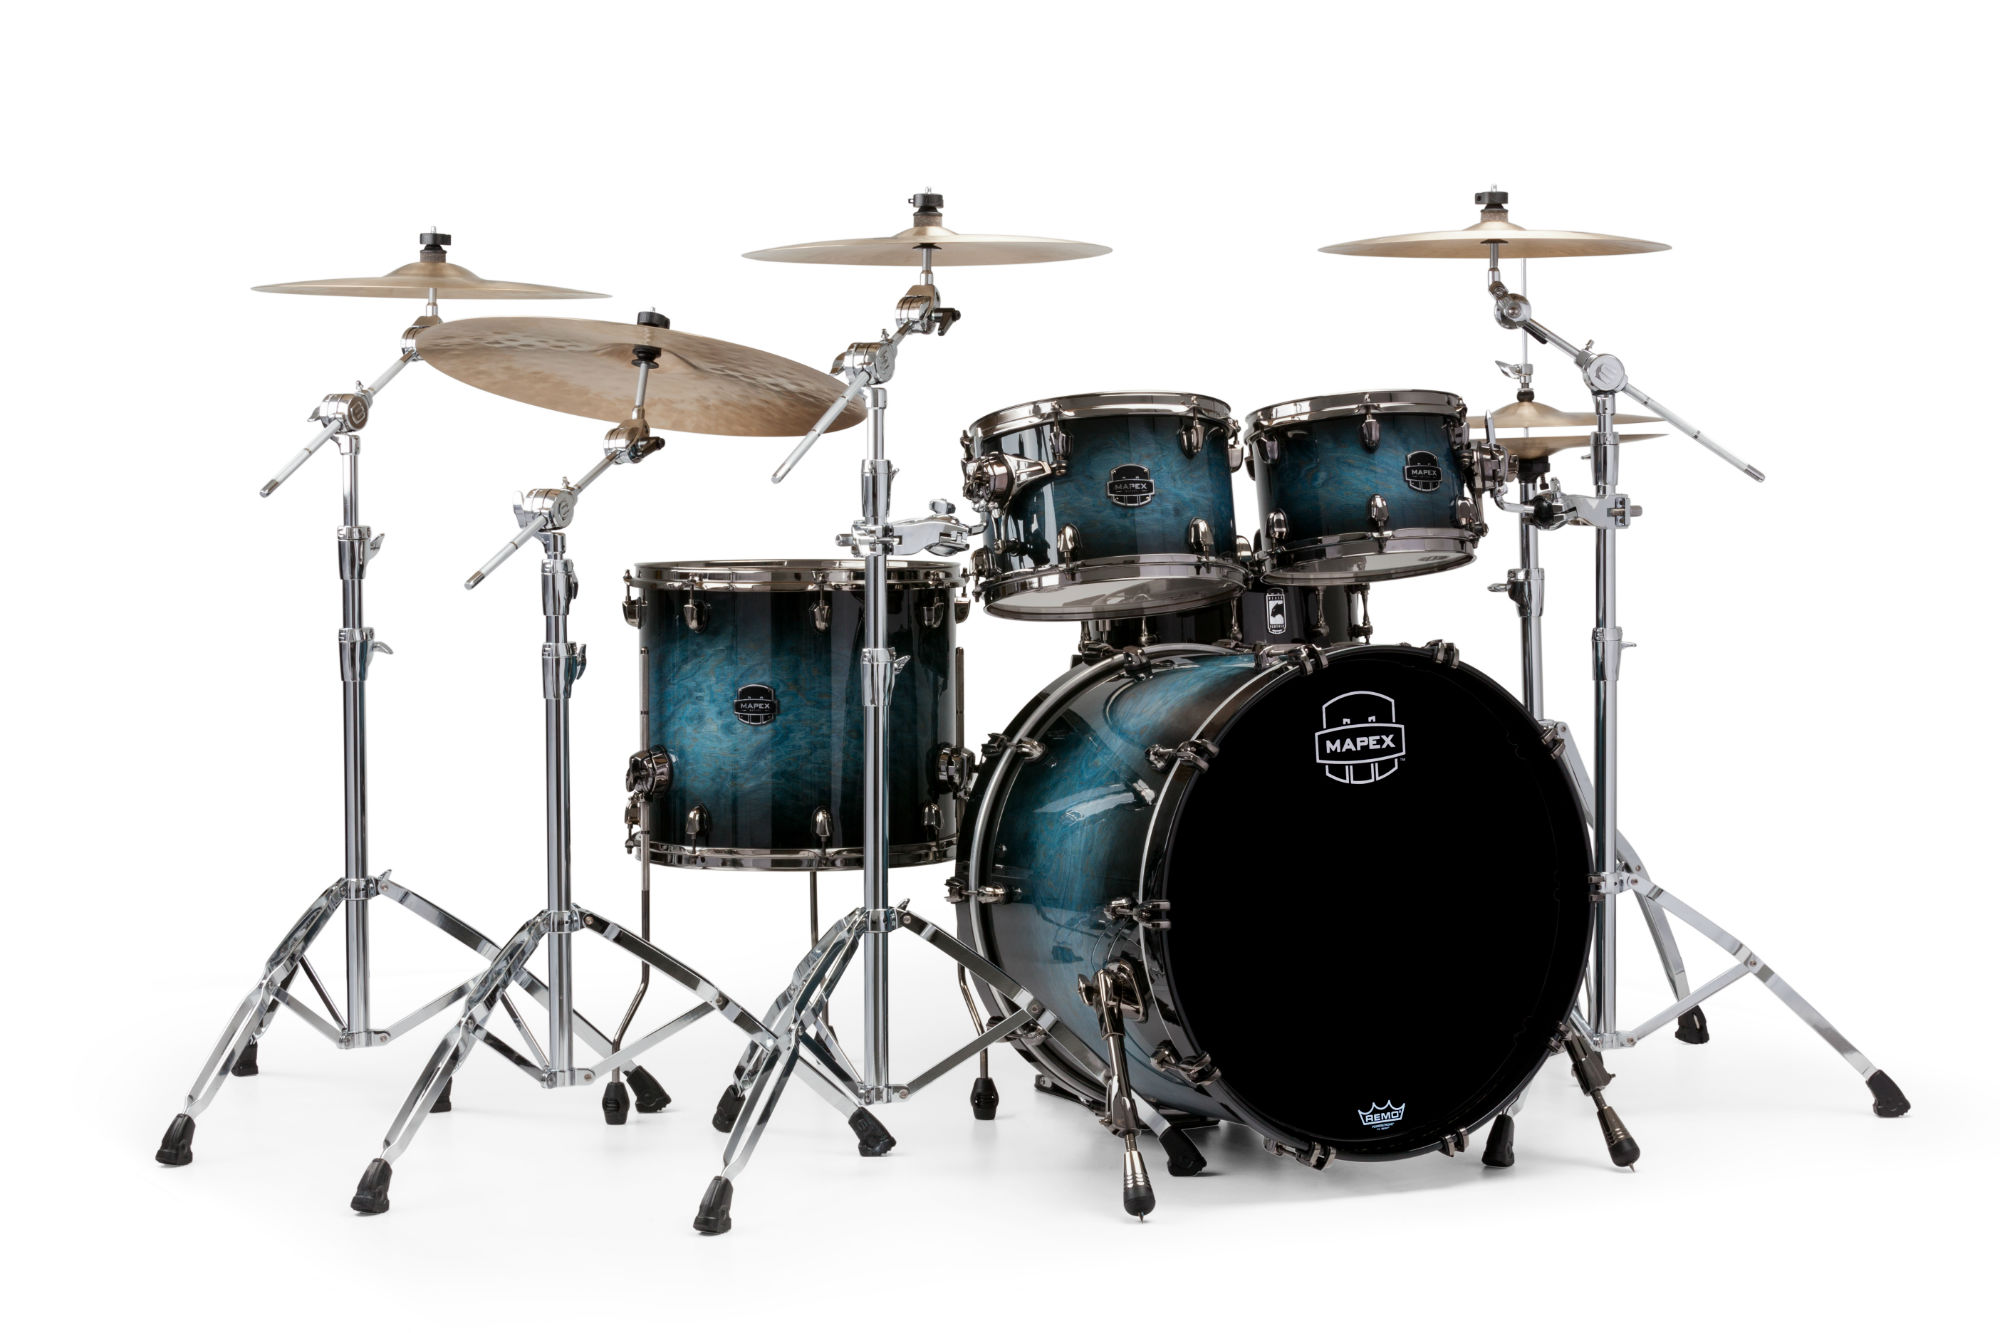 Mapex Saturn V MH Exotic Rock 4-piece shell pack with SONIClear Edge - SV504XBSSL - Deep Water Ash Burl